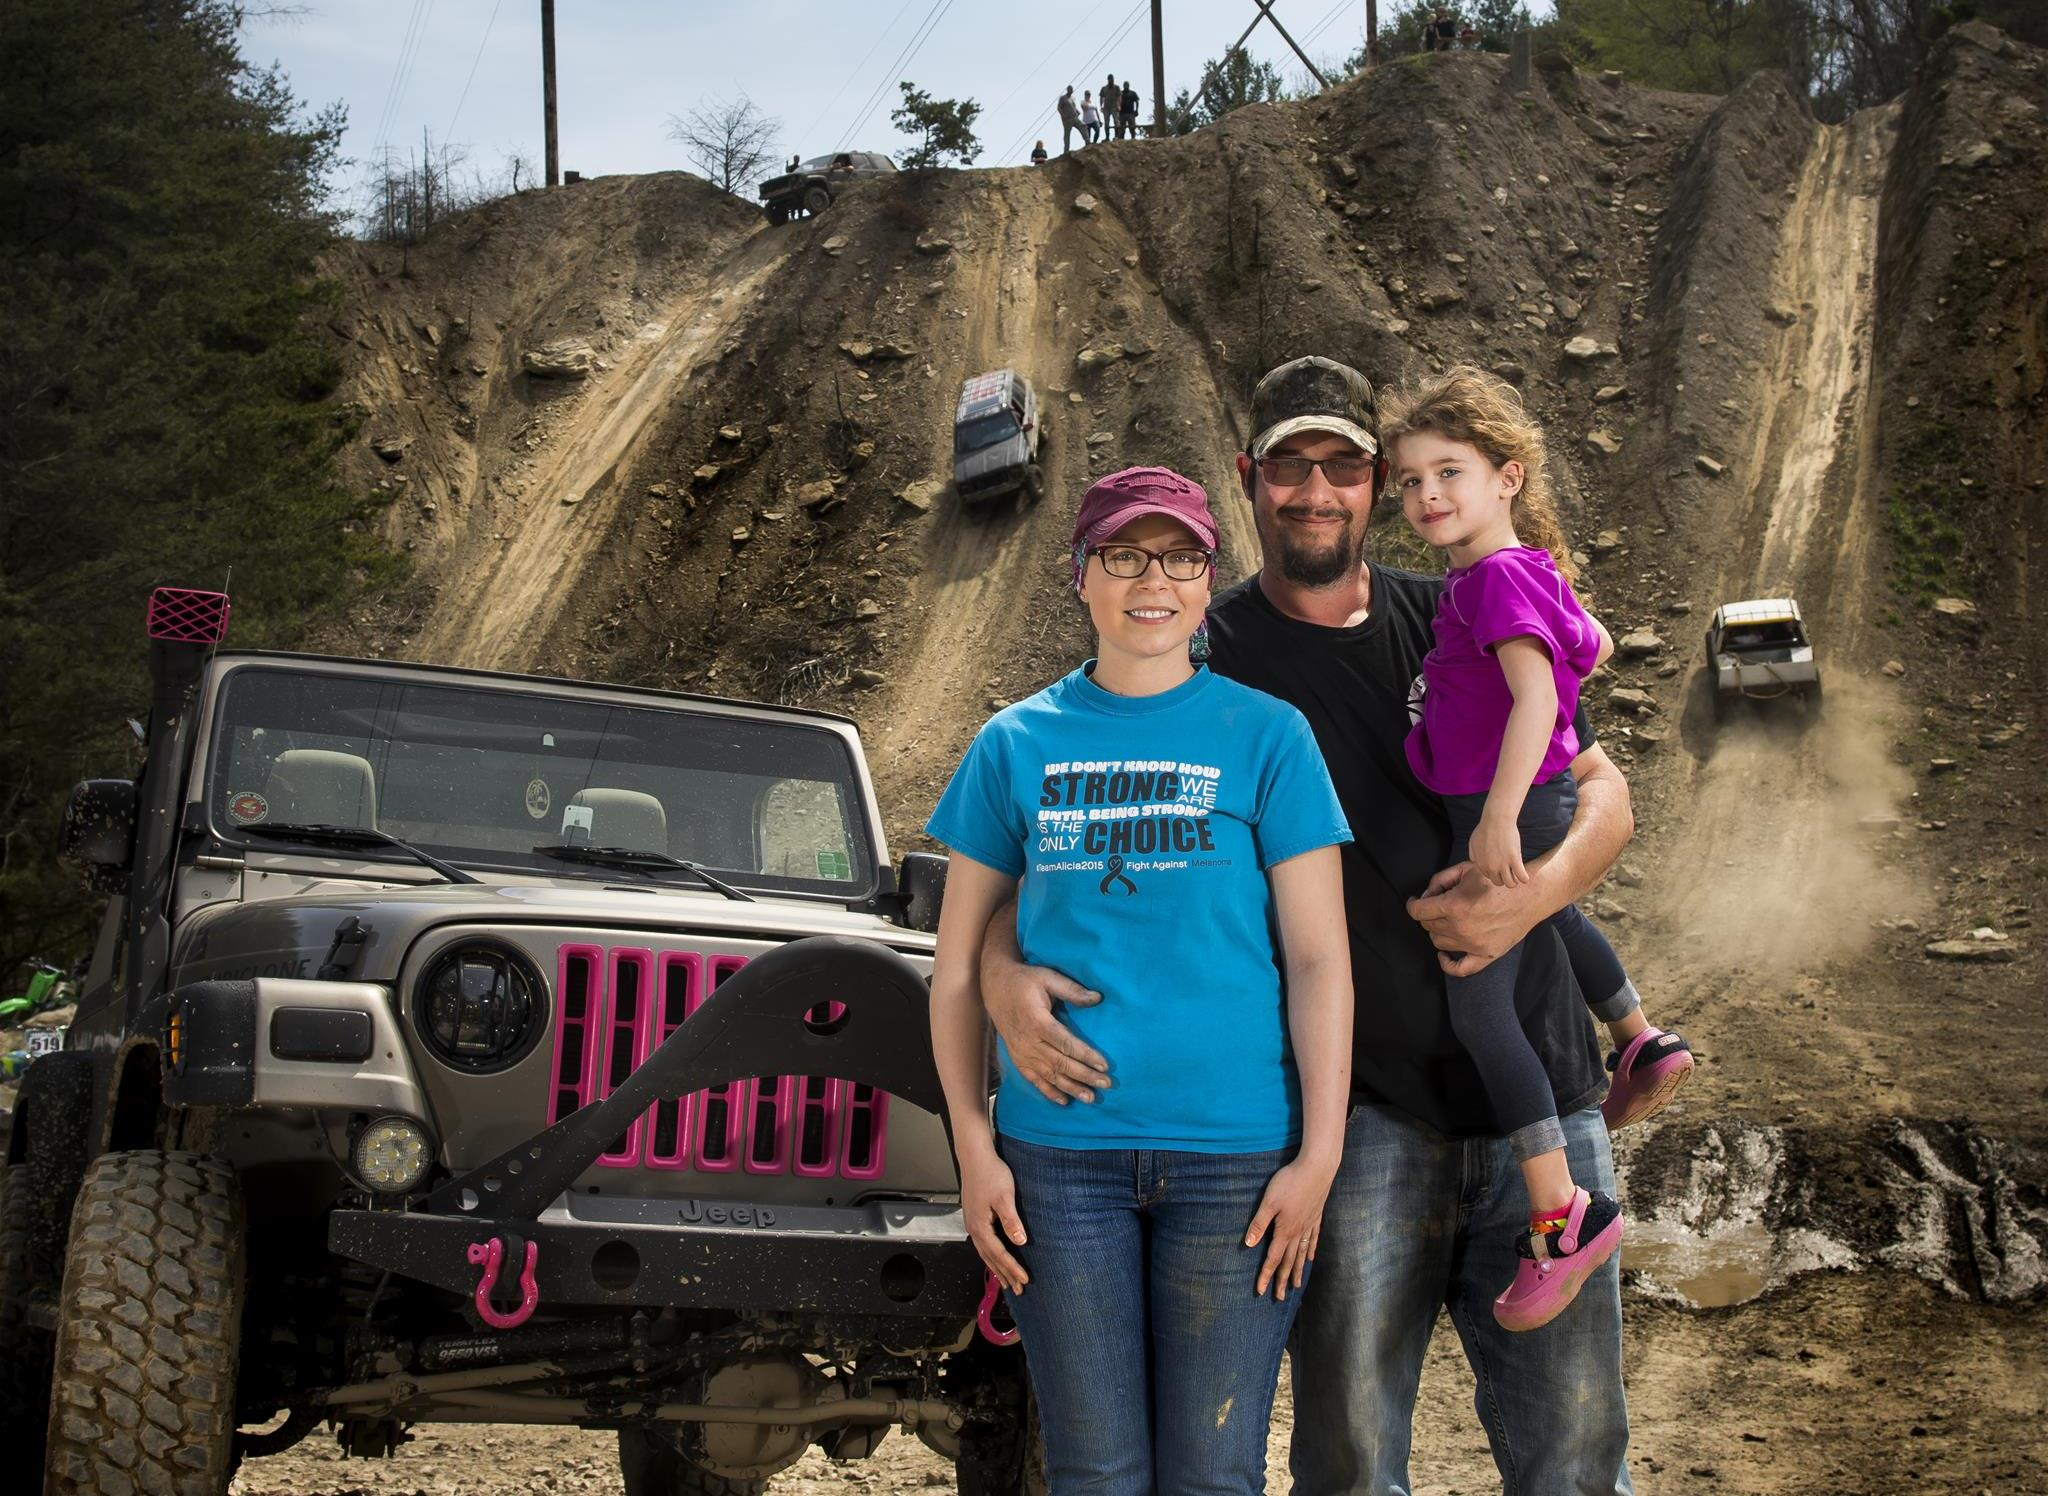 Cancer survivor Alicia Mitchell and family